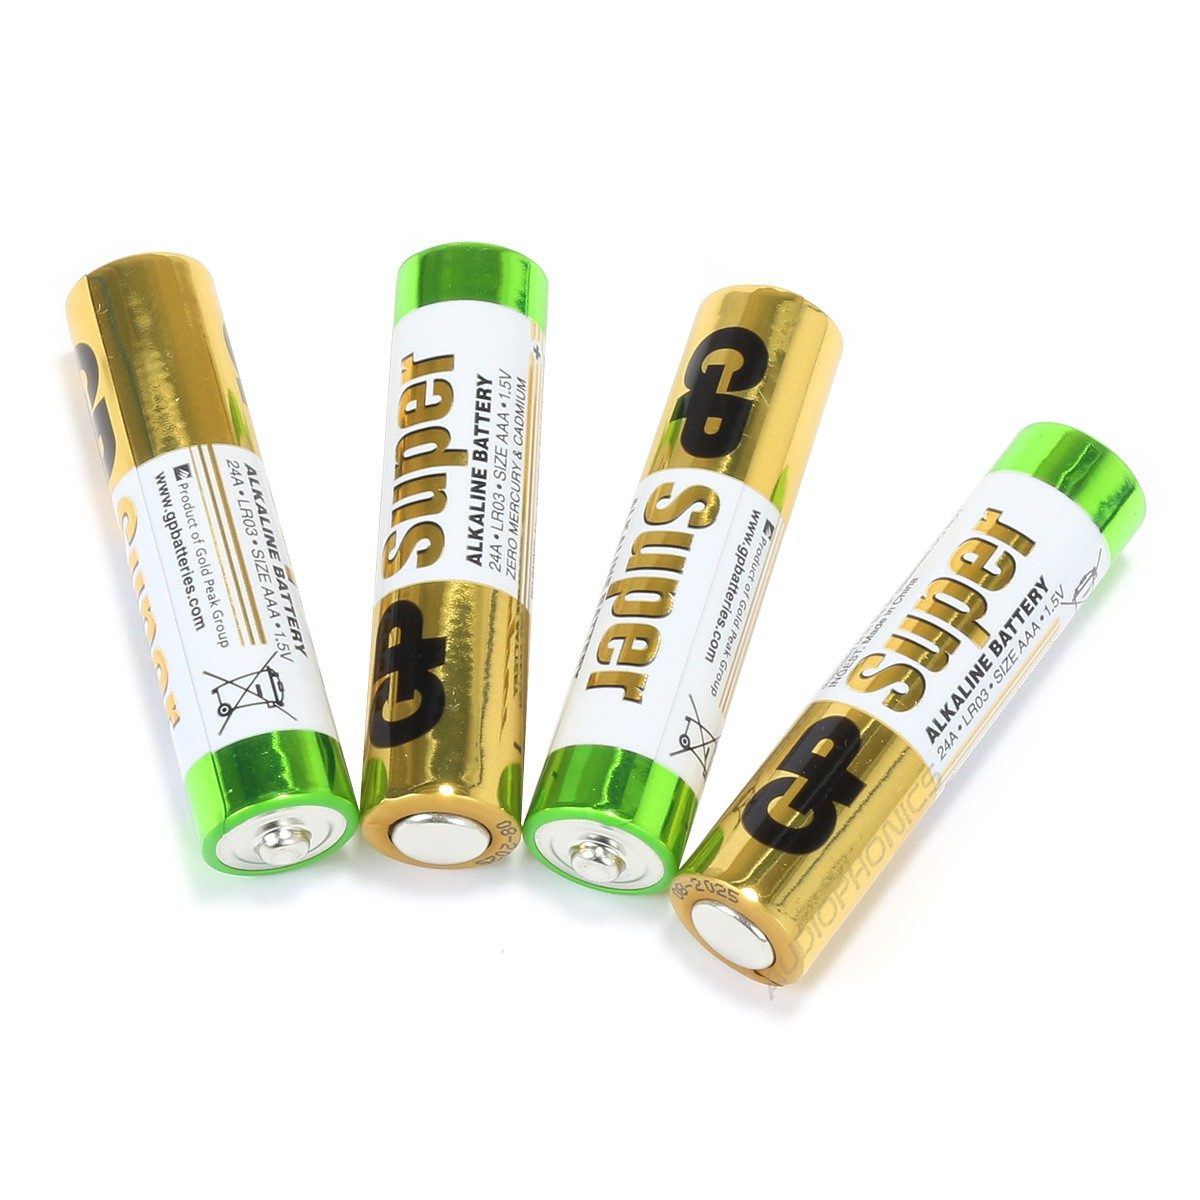 GP SUPER LR3 AAA Alkaline Battery 1.5V (Set x4)